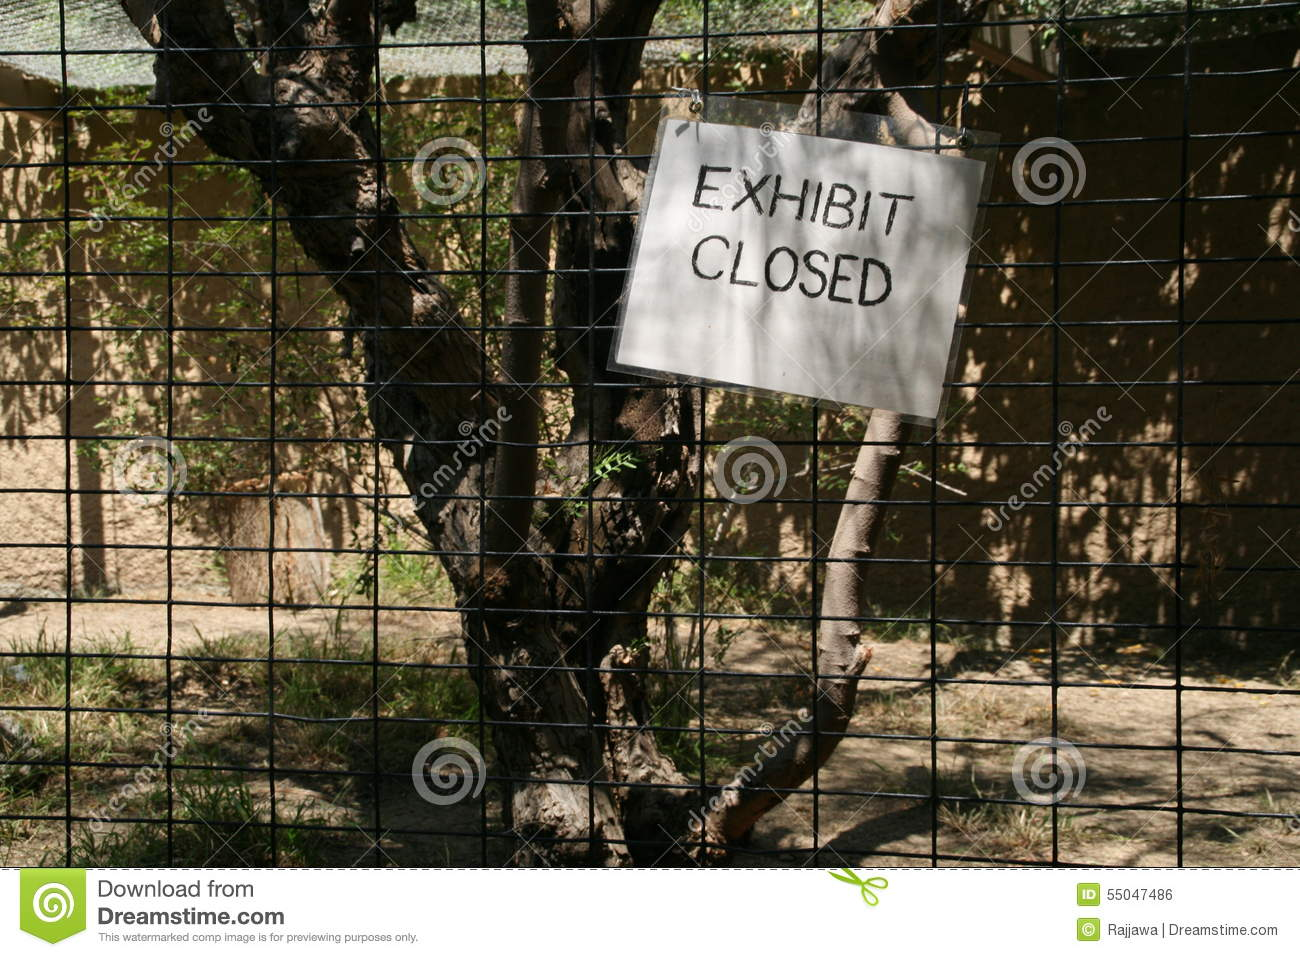 Exhibit Closed Sign Los Angeles Zoo Stock Photo Image Of Access